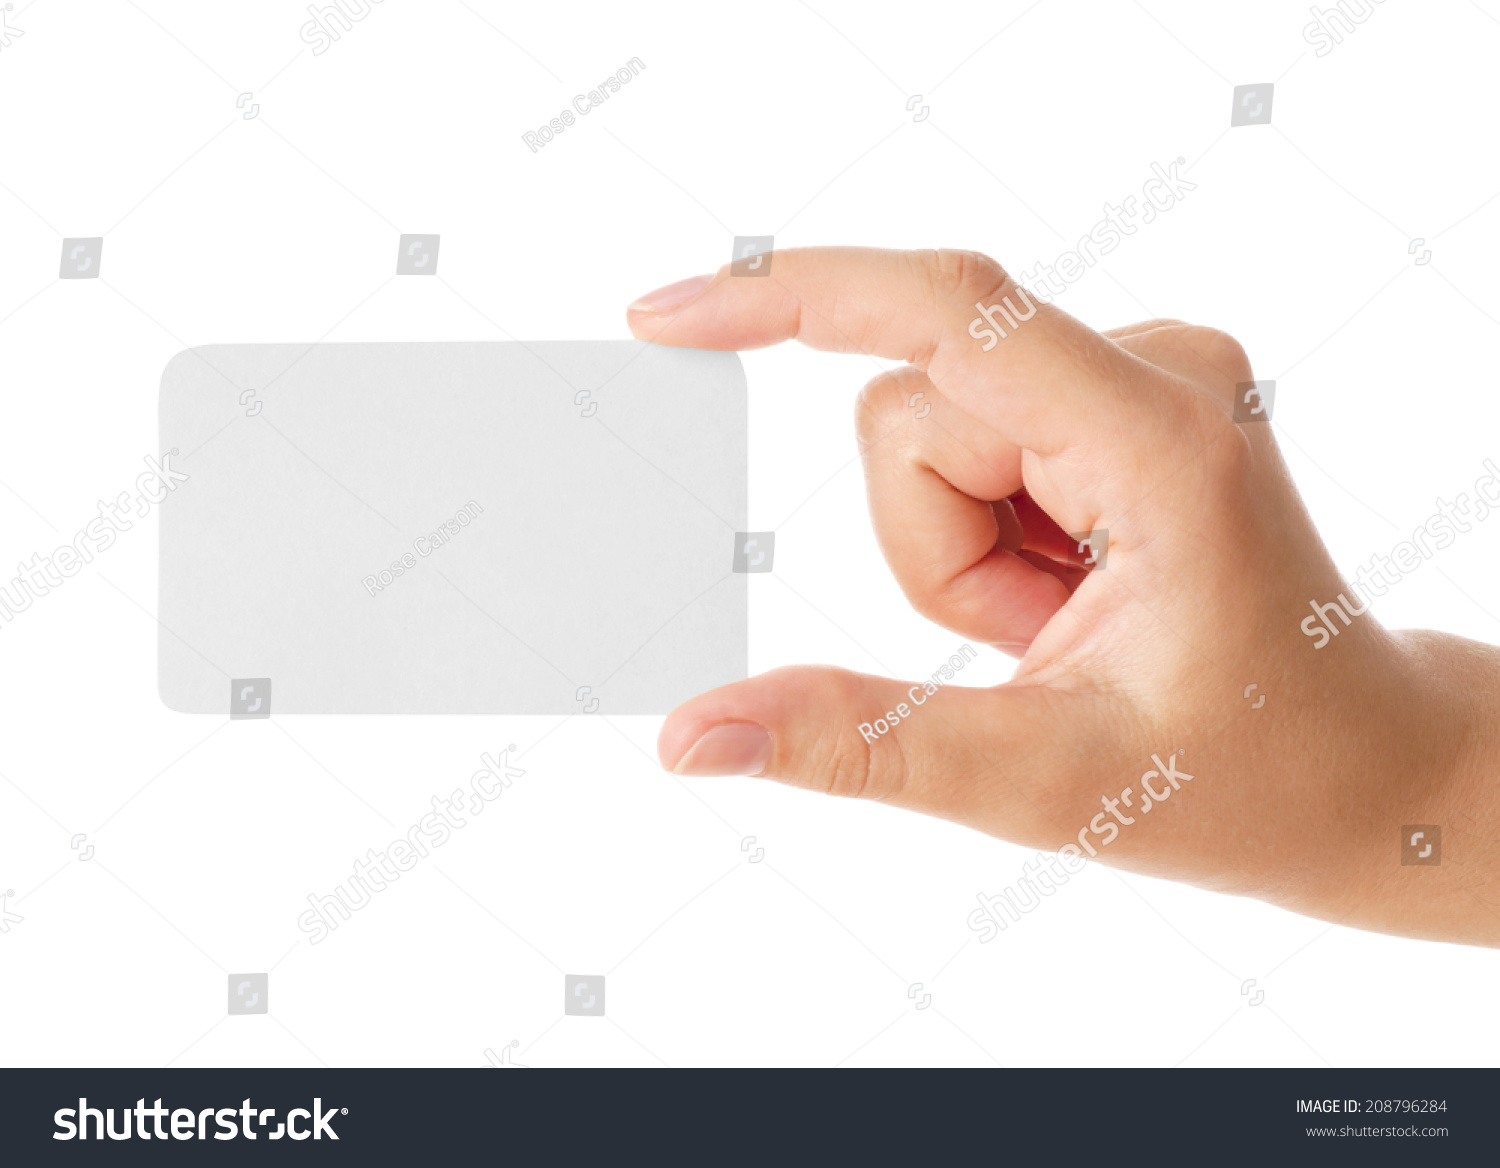 Hand Holding Business Card Isolated On Stock Photo 208796284 ...